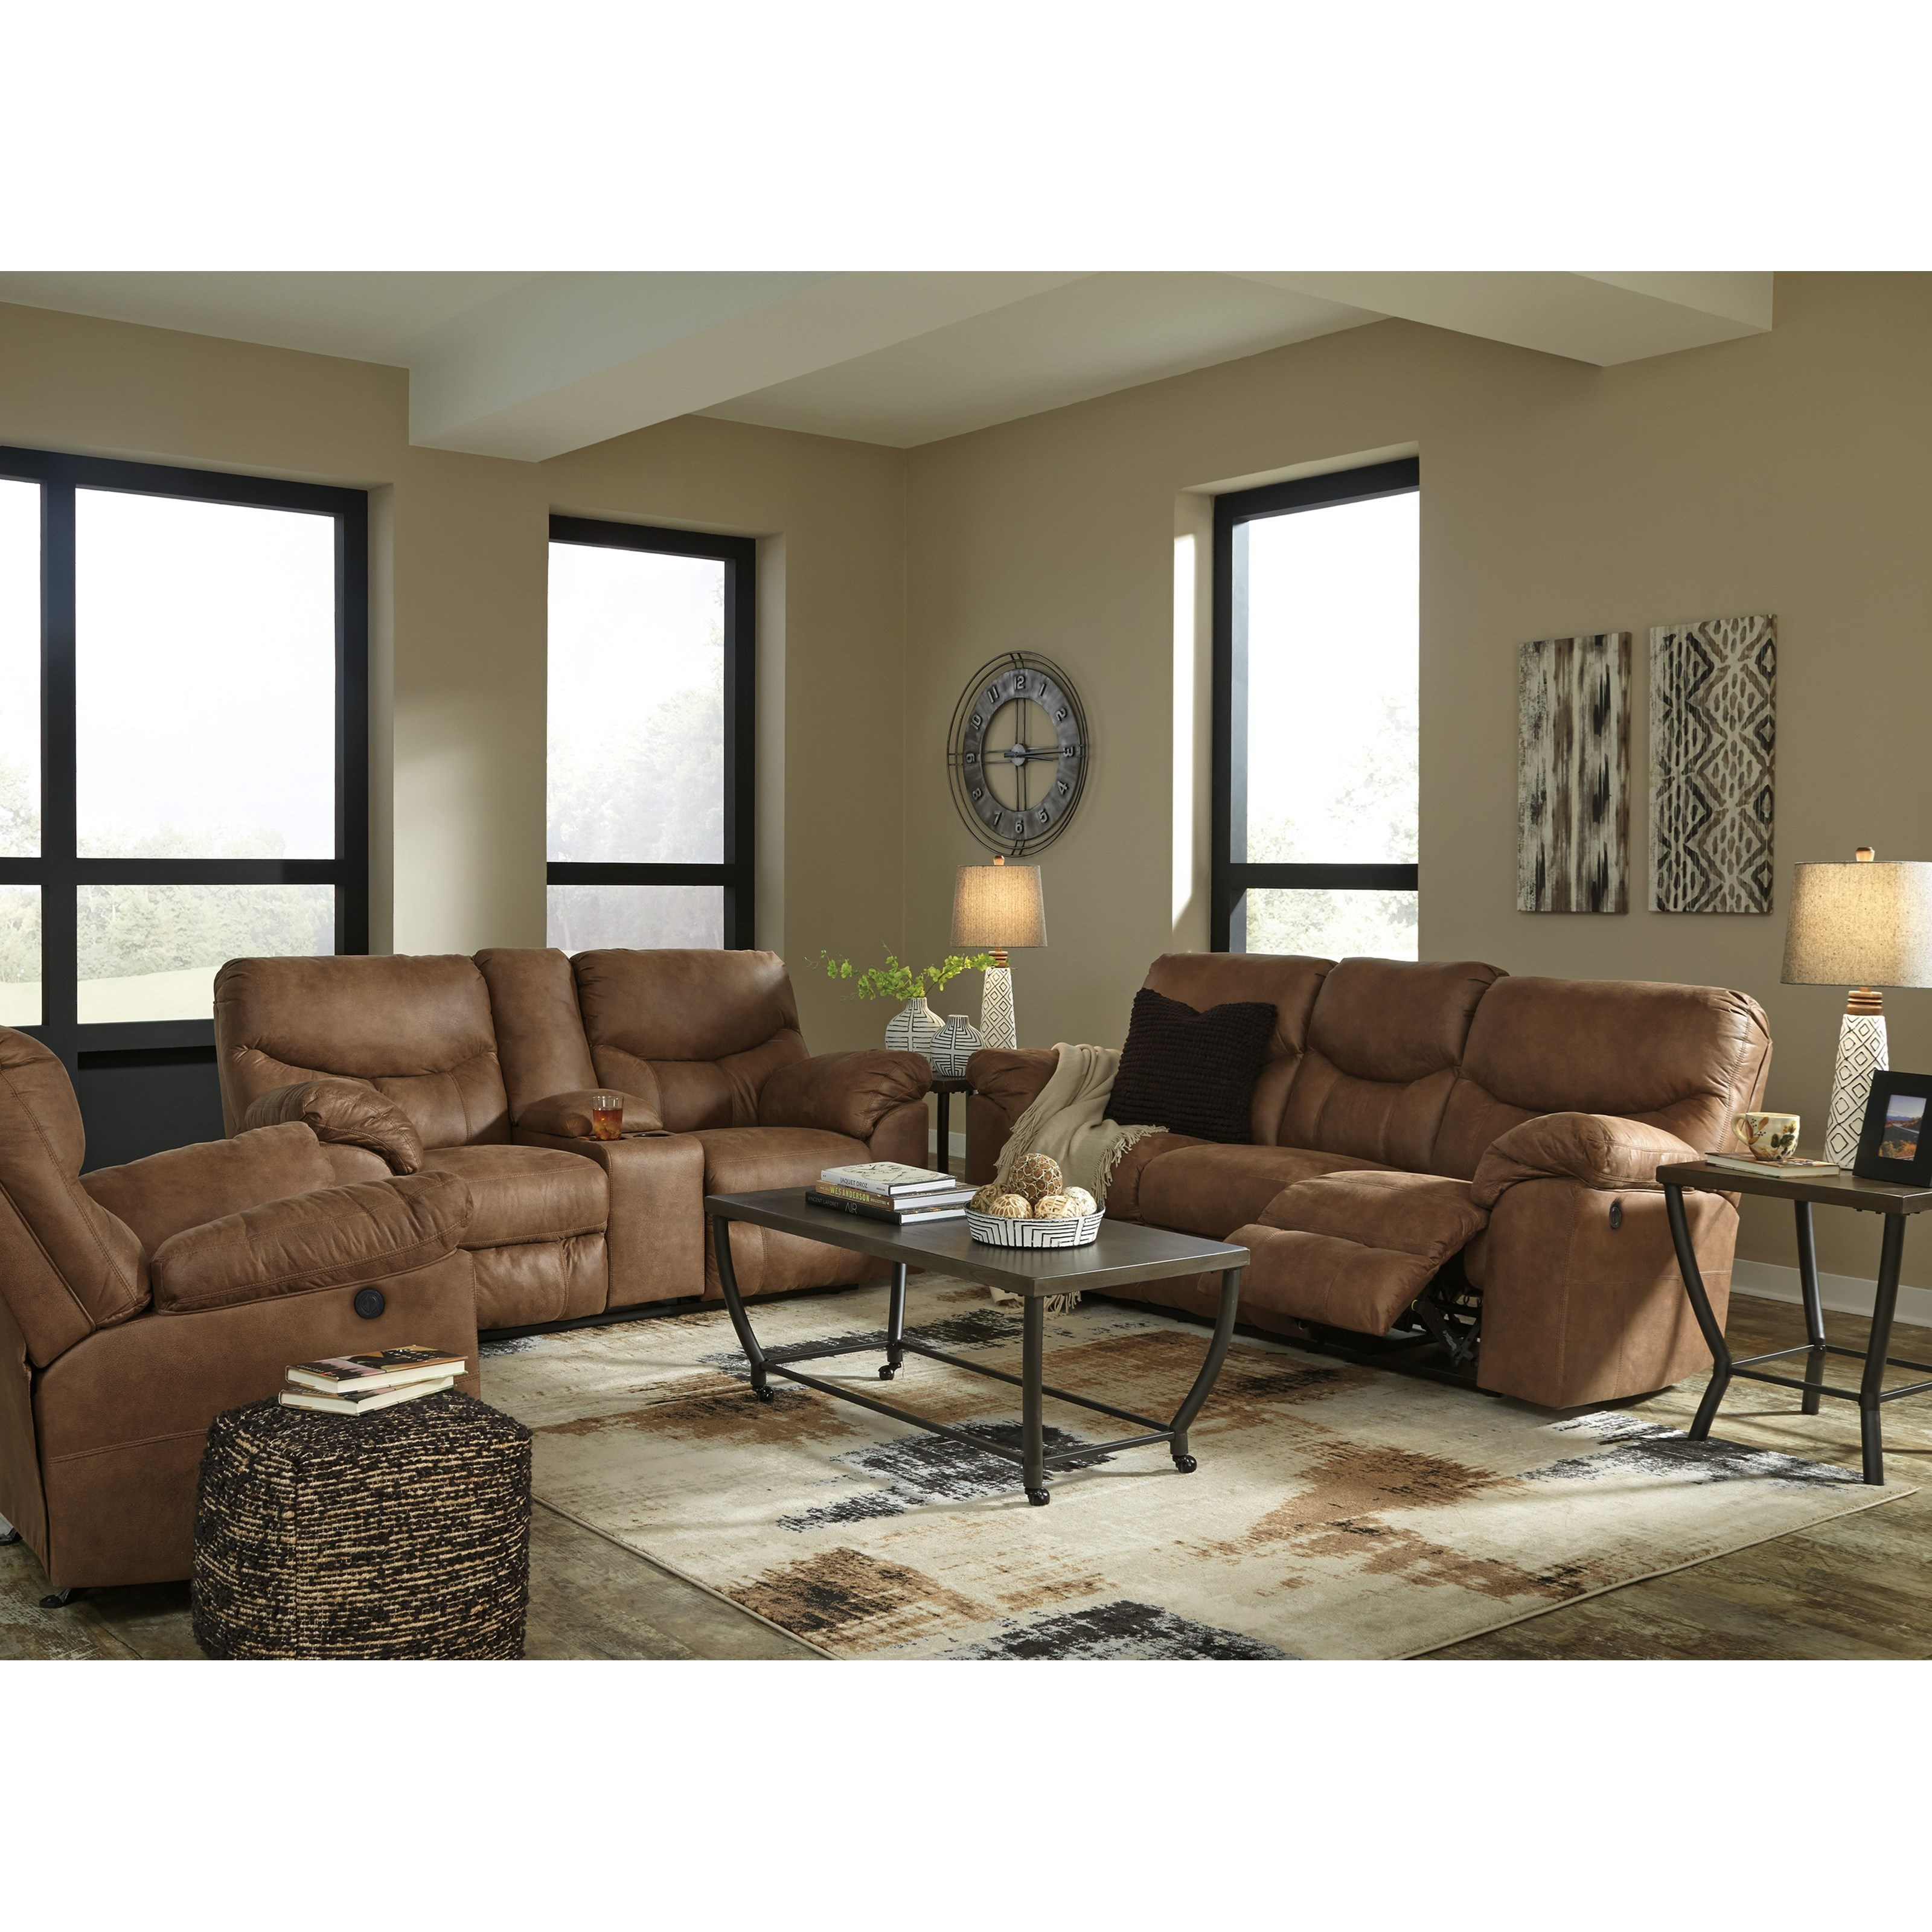 Boxberg Reclining Living Room Group by Signature Design by Ashley at Value City Furniture